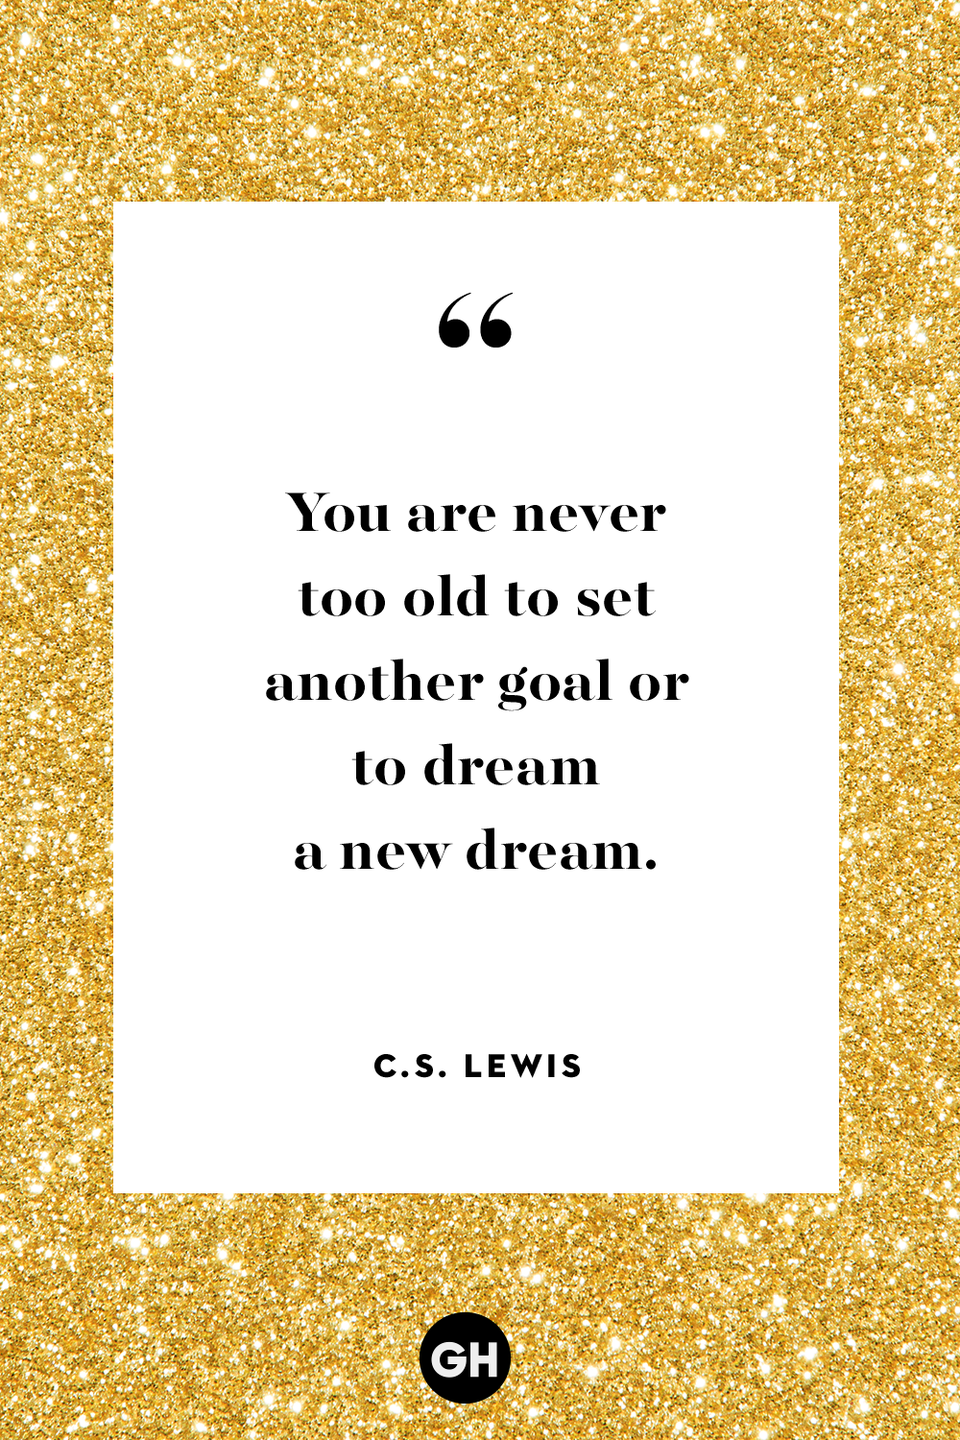 <p>You are never too old to set another goal or to dream a new dream.</p>